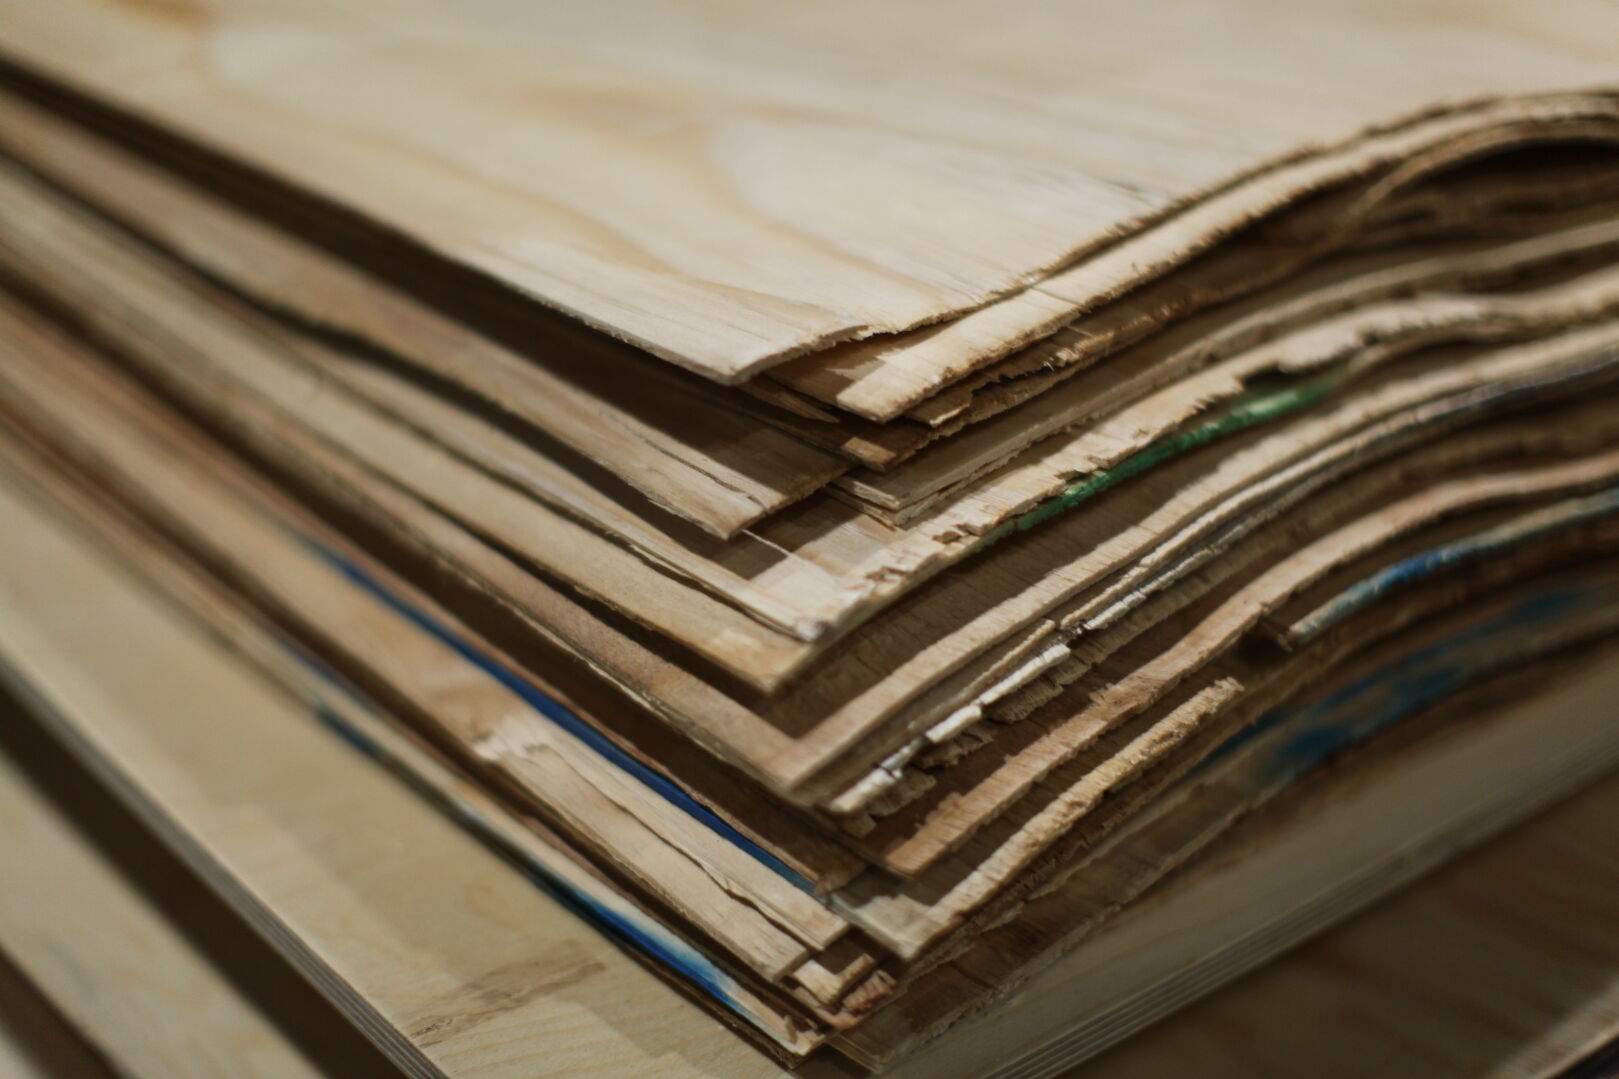 A veneer is a thin sheet of wood, peeled from the surface of a rotating timber log, akin to peeling an apple.